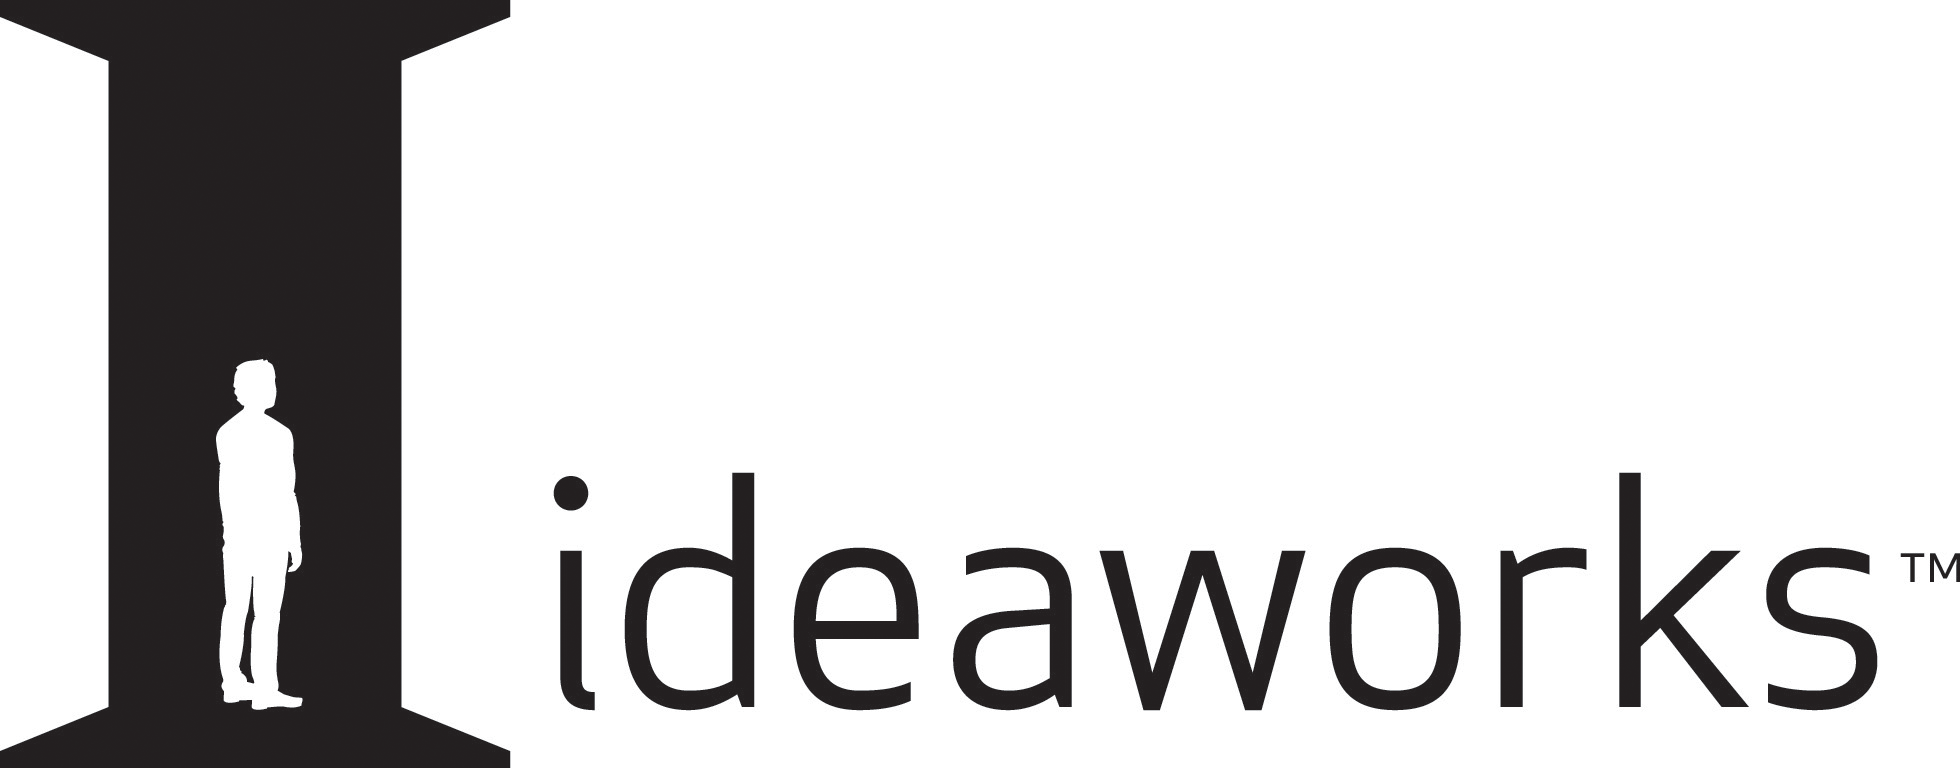 ideaworks.png